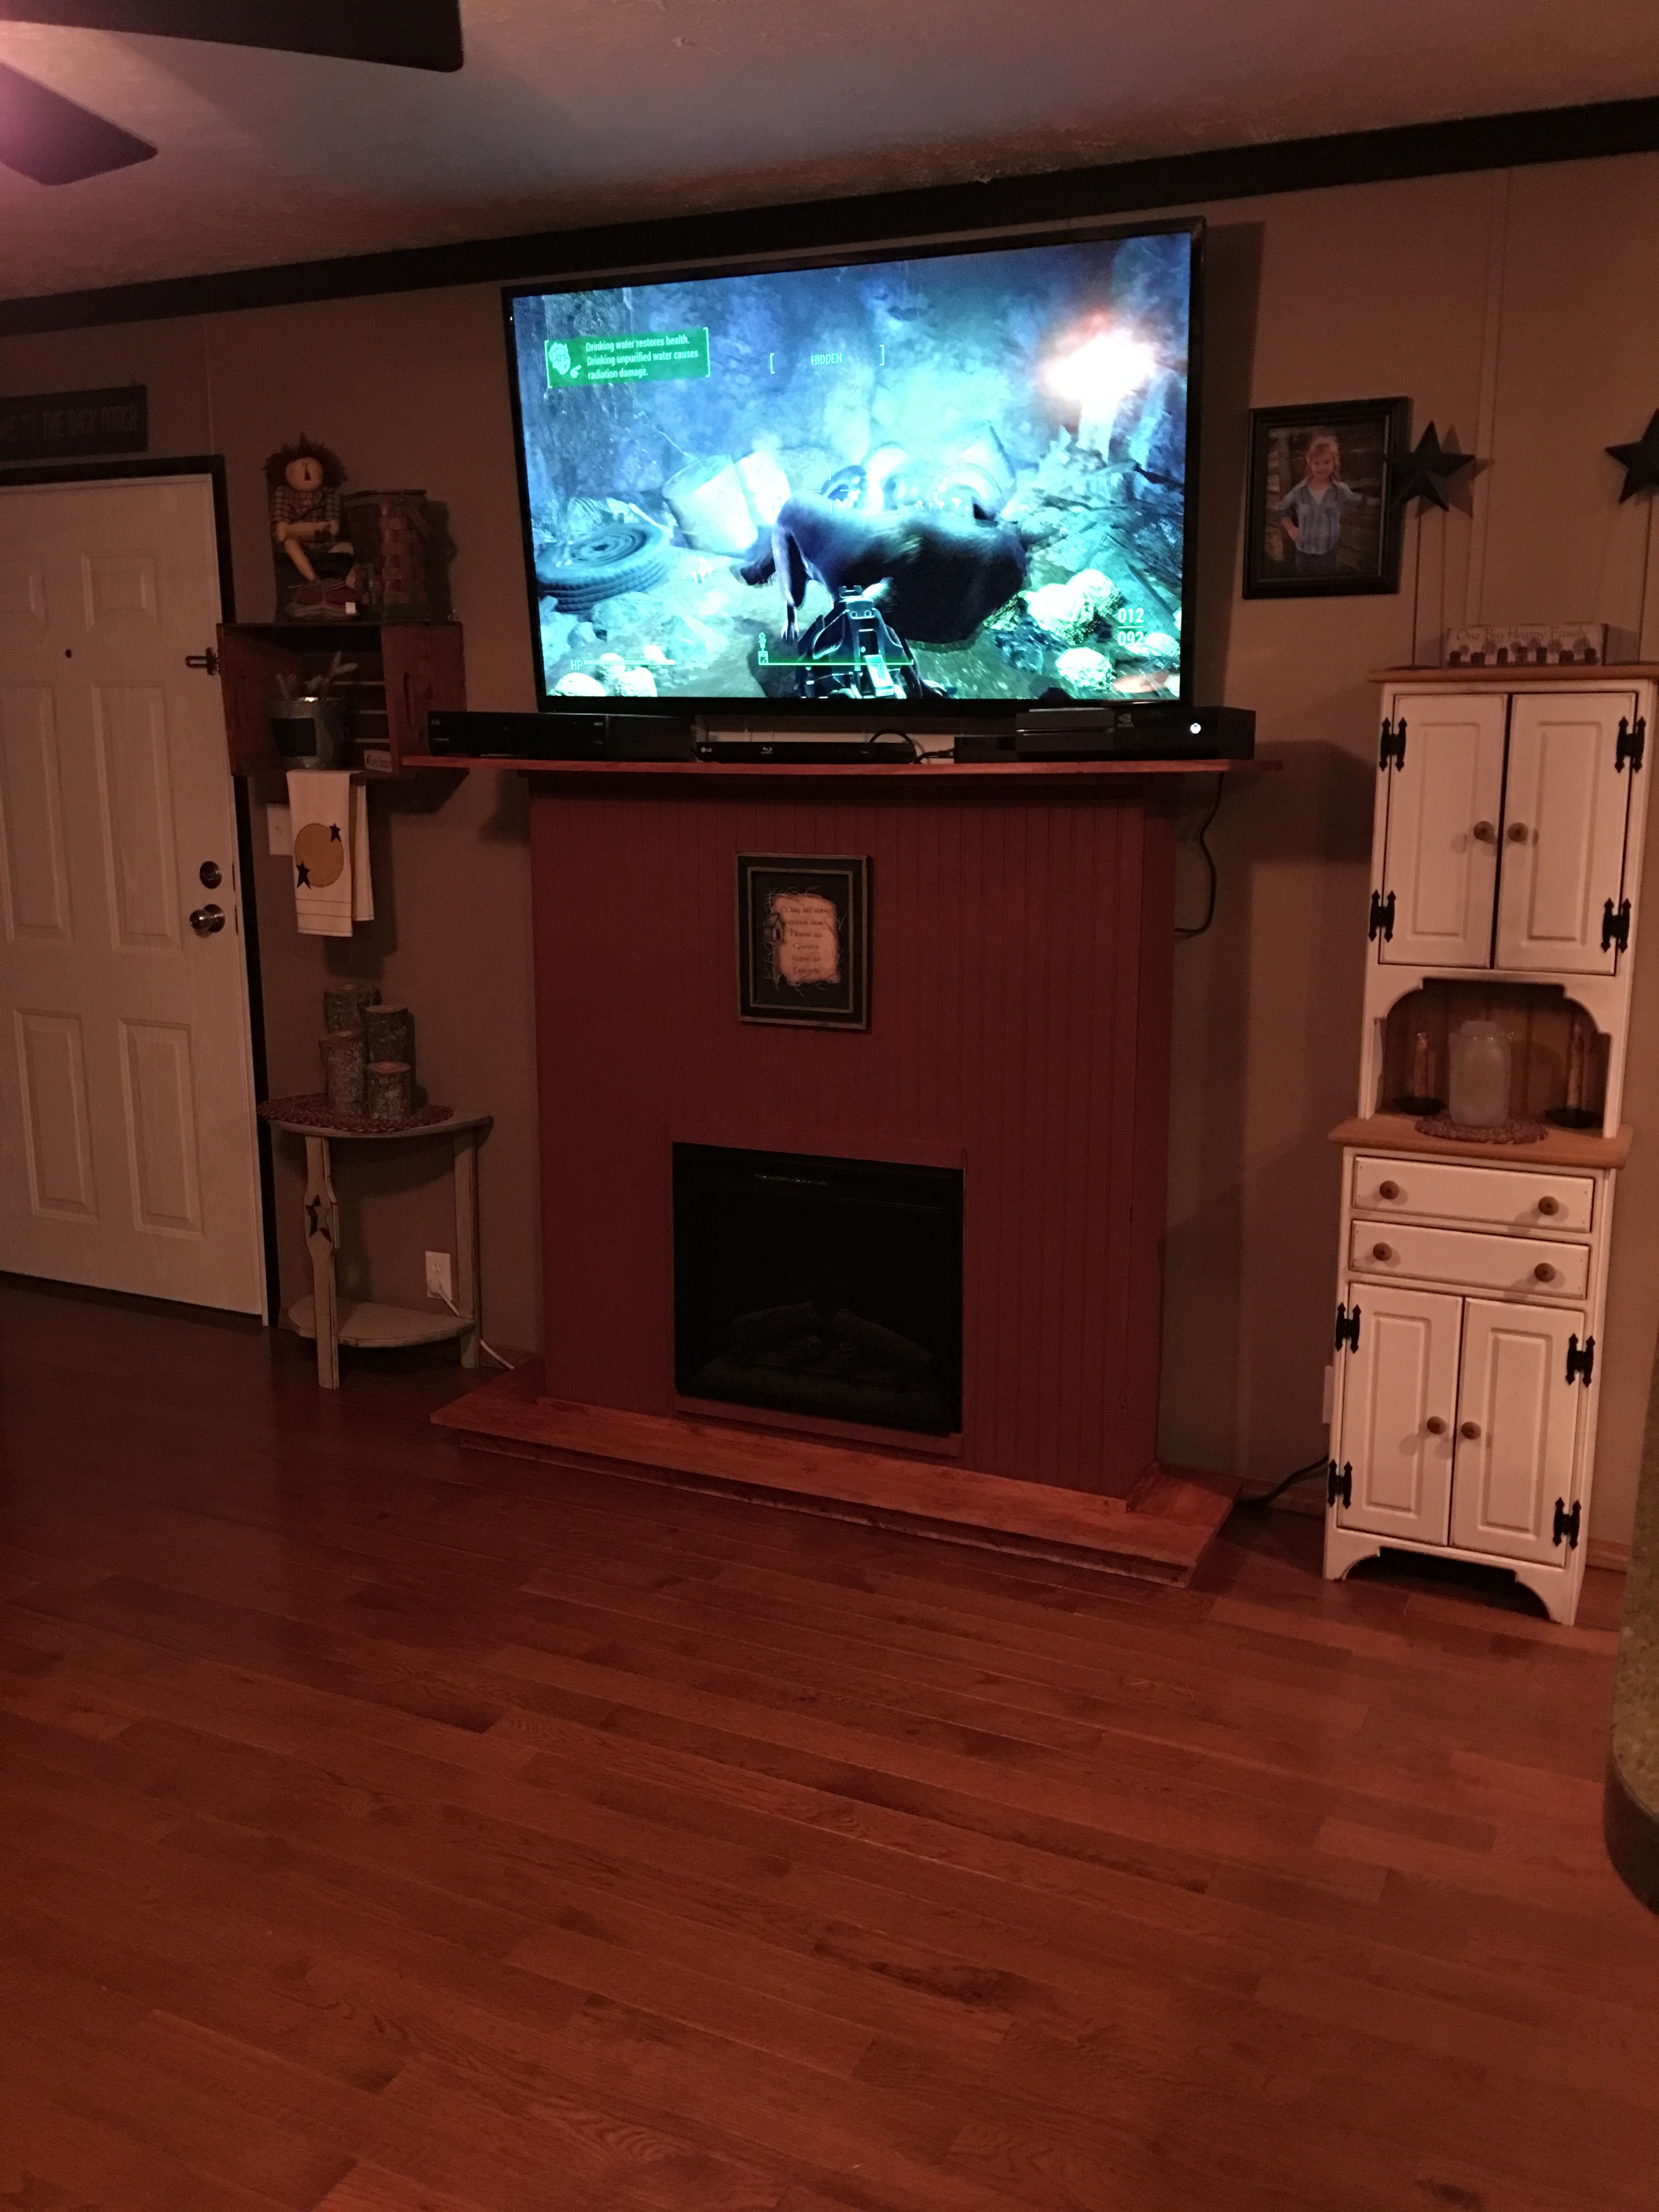 This is a fireplace that I made myself